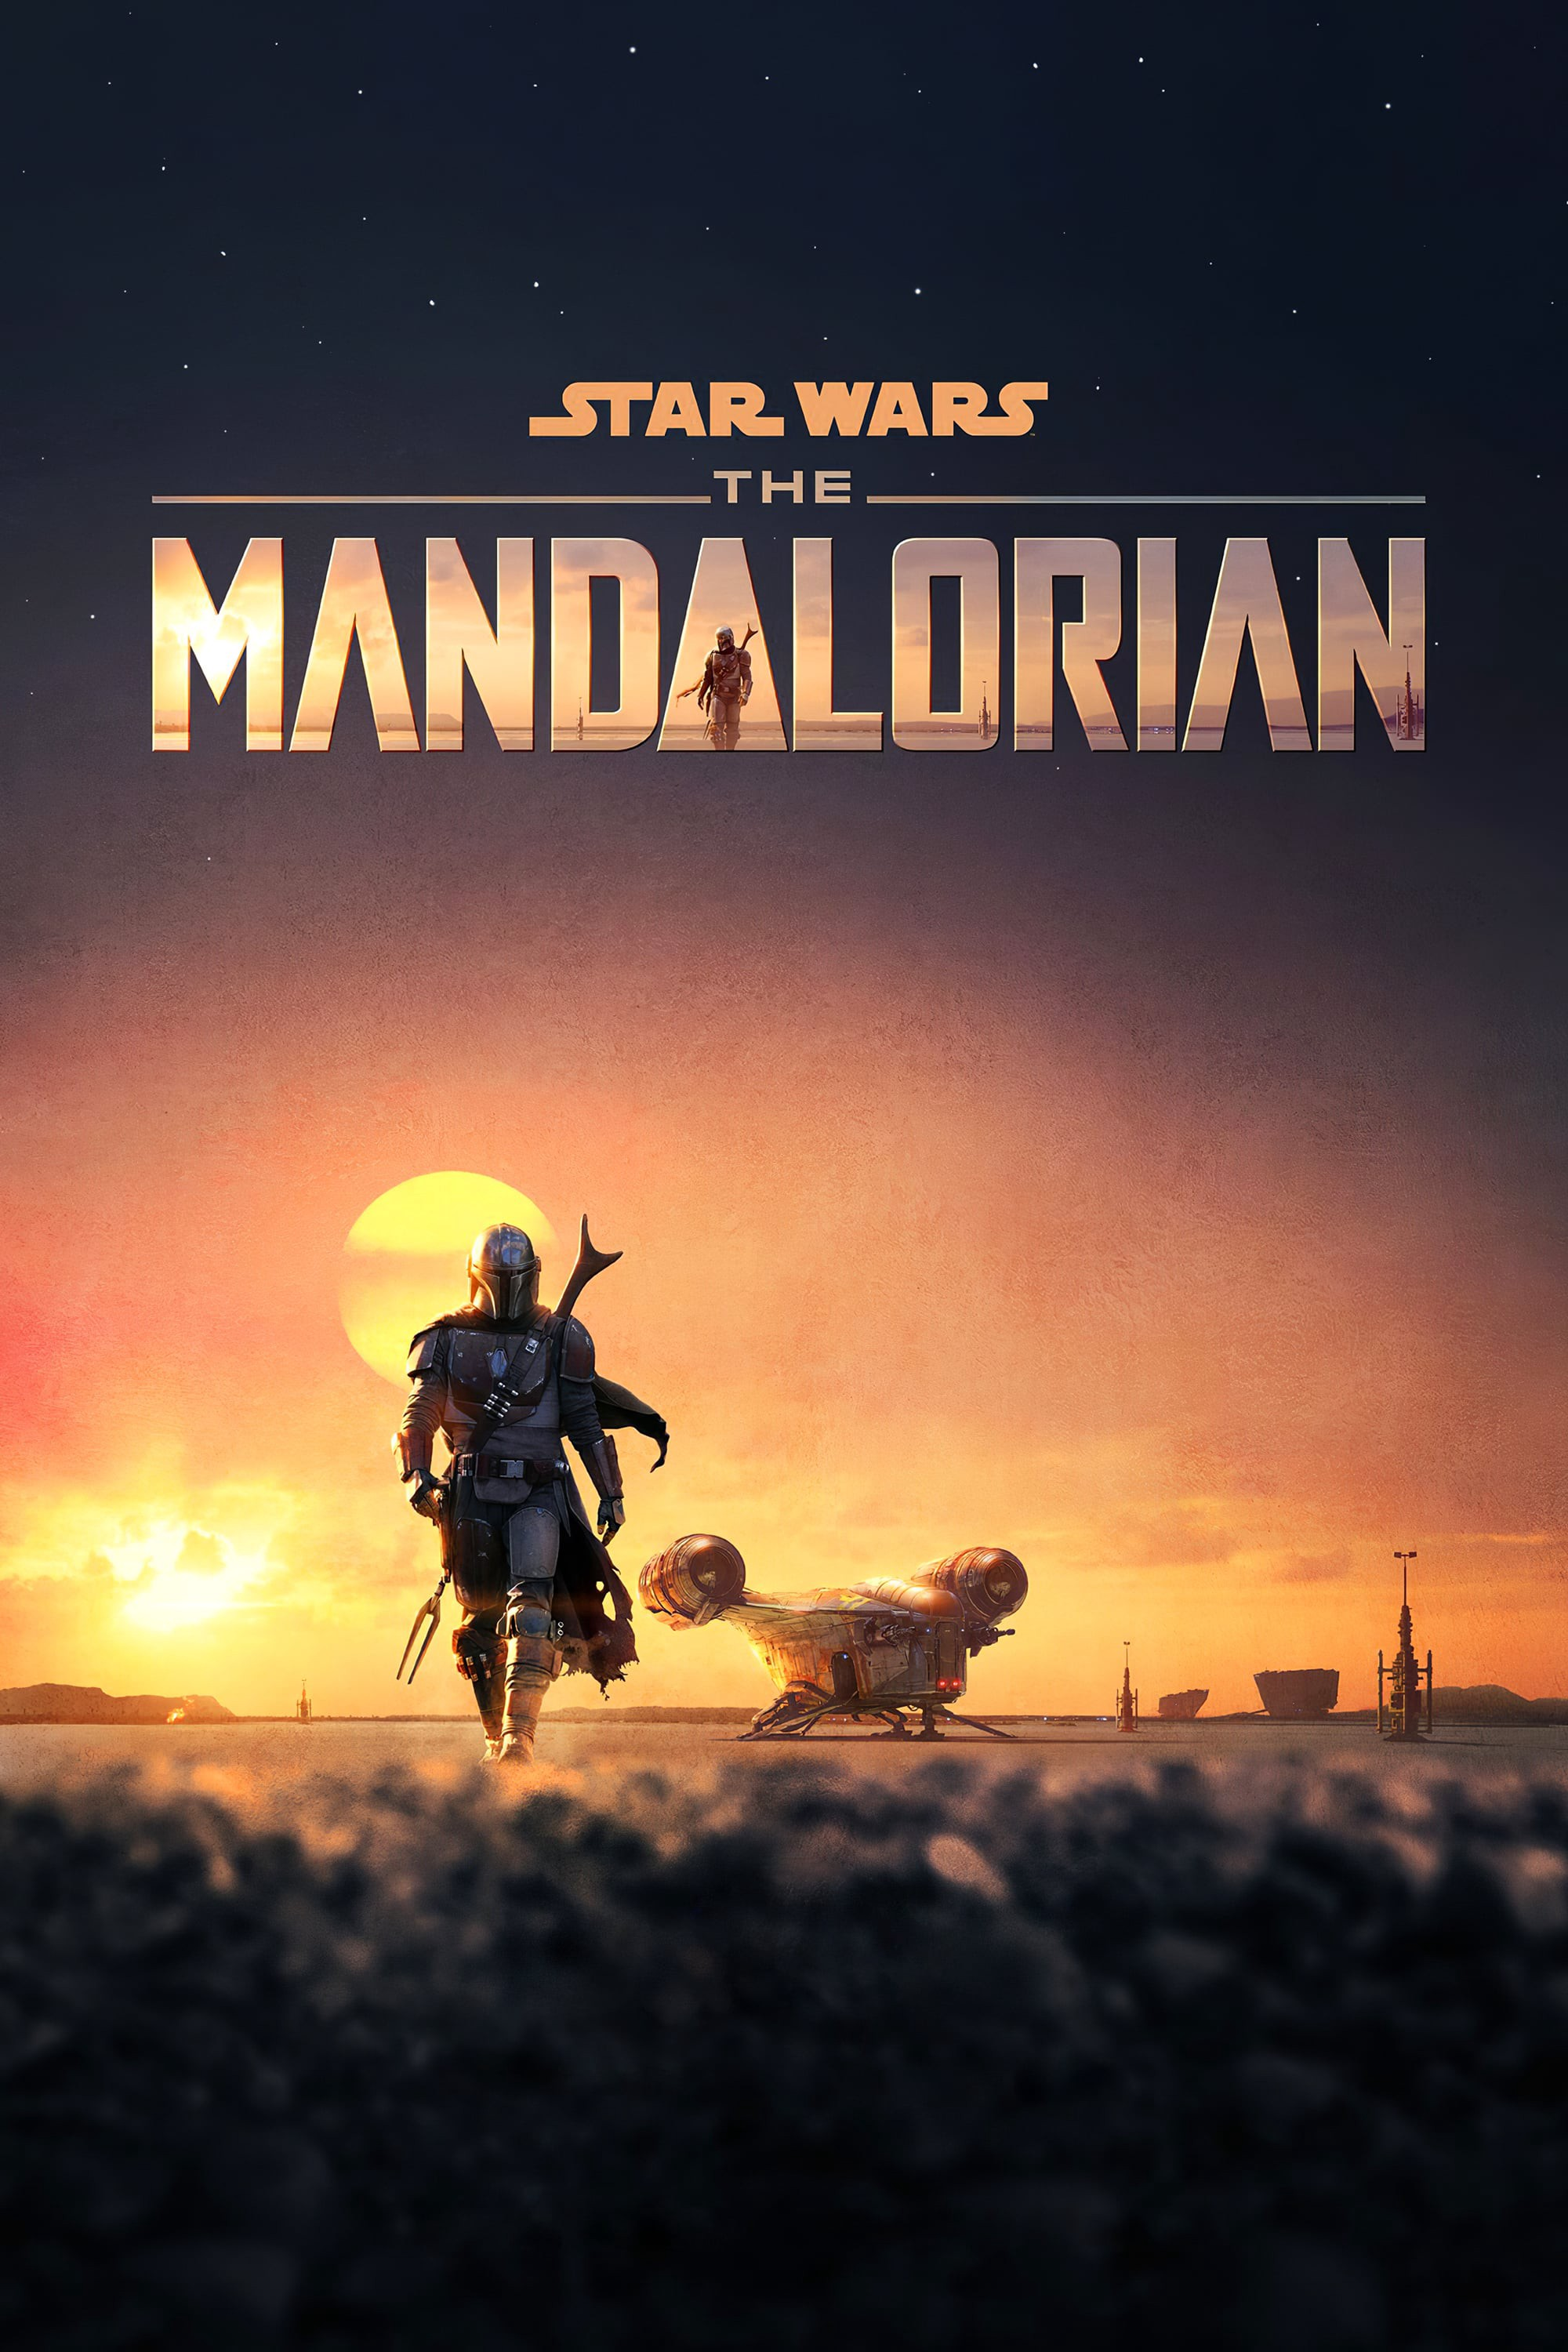 Star Wars The Mandalorian Chapter 9 The Marshal Season 2 Premiere On Disney By The Mandalorian Chapter 9 Oct 2020 Medium